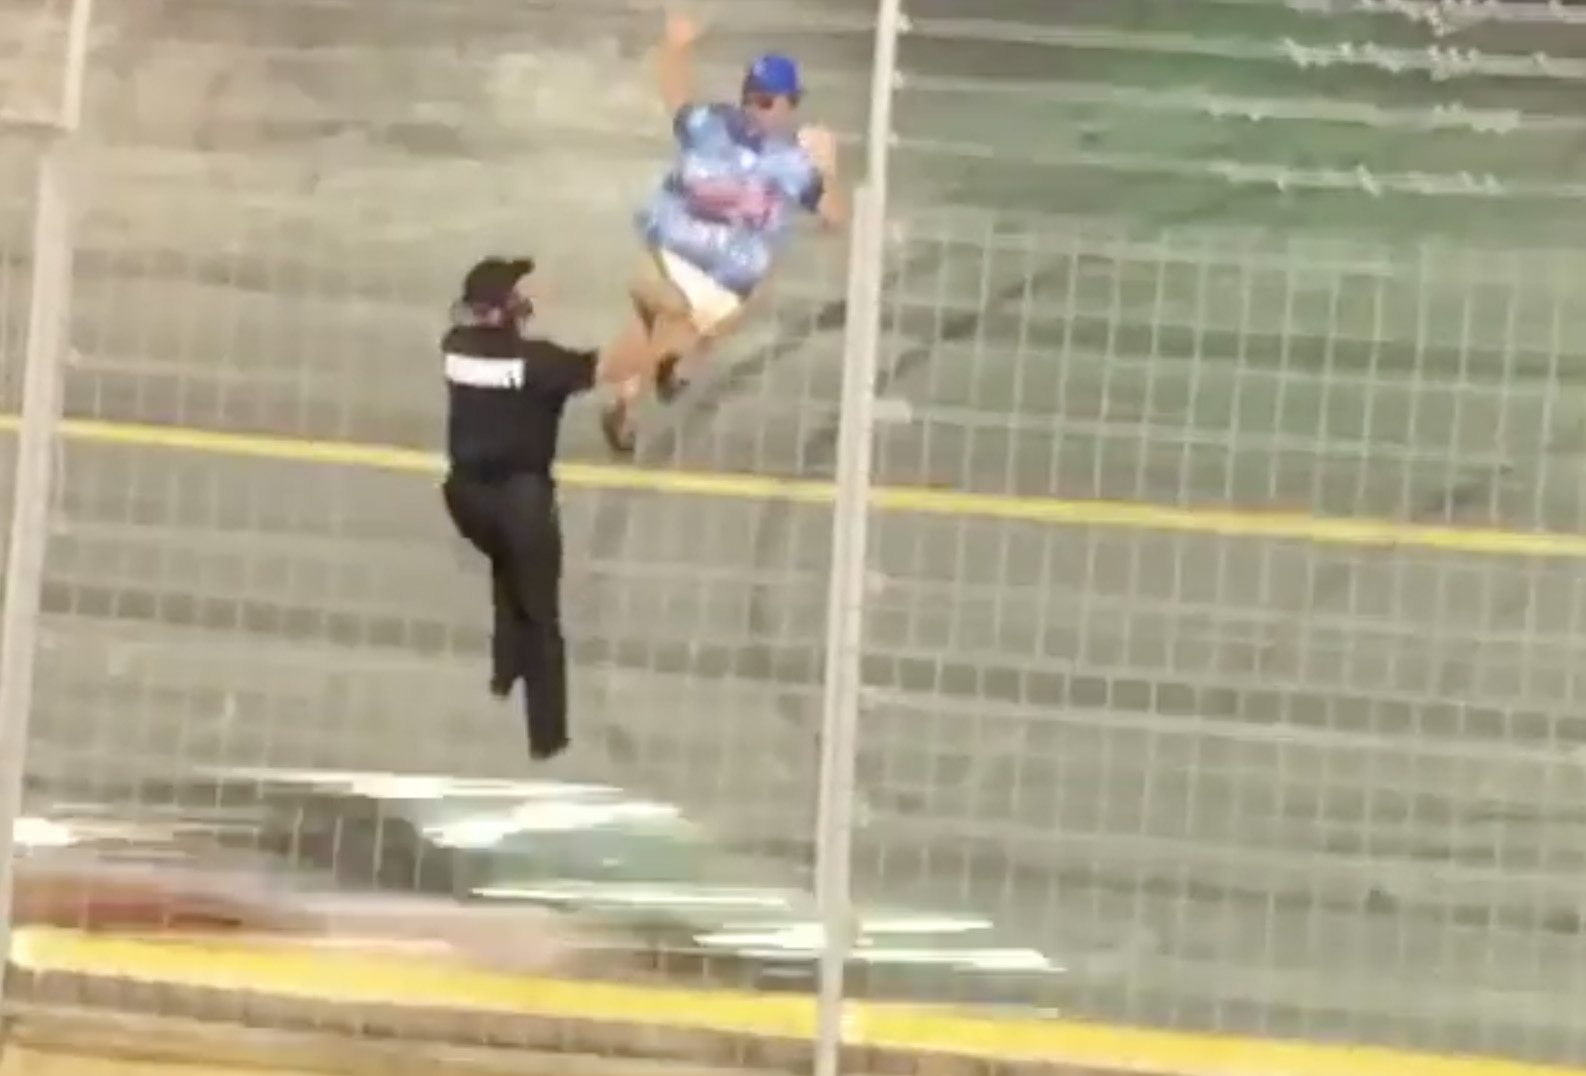 NASCAR fan climbs the fence in the Coca-Cola 600